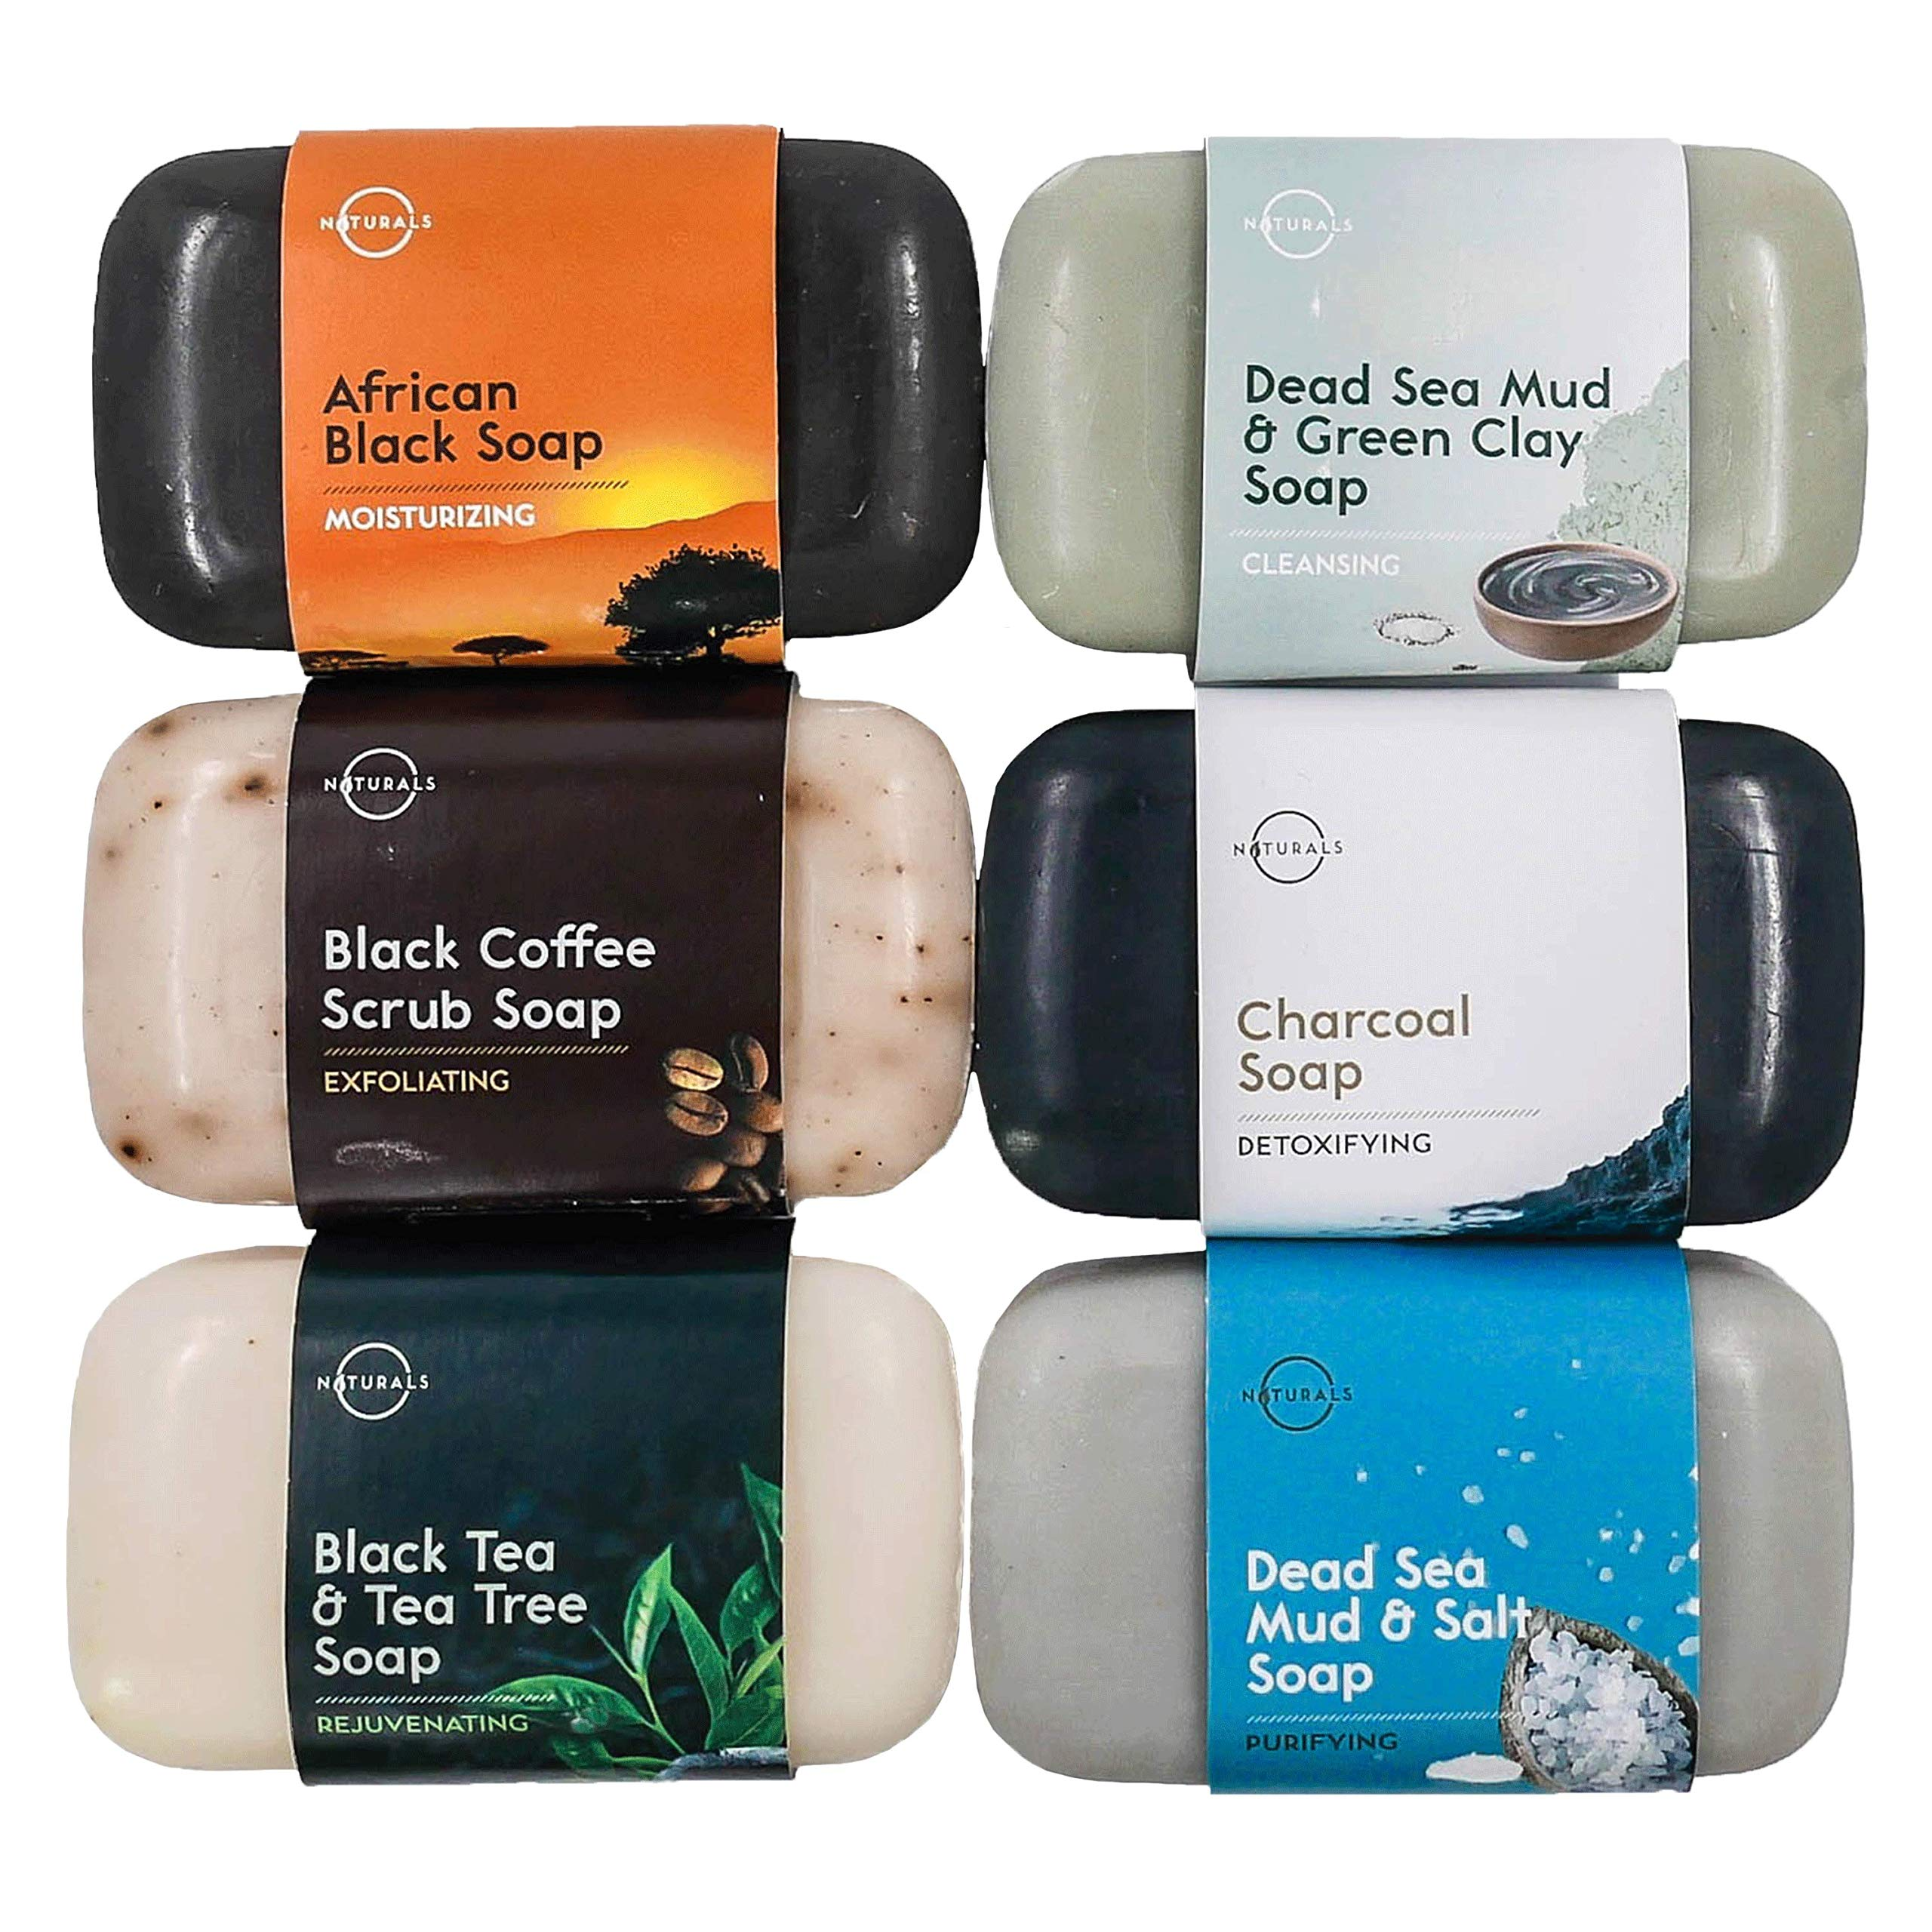 O Naturals 6-Piece Black Soap Bar Collection. 100% Natural. Organic Ingredients. Helps Treat Acne, Repairs Skin, Moisturizes, Deep Cleanse, Luxurious. Face & Body Women & Men. Triple Milled, Vegan 4oz by O Naturals